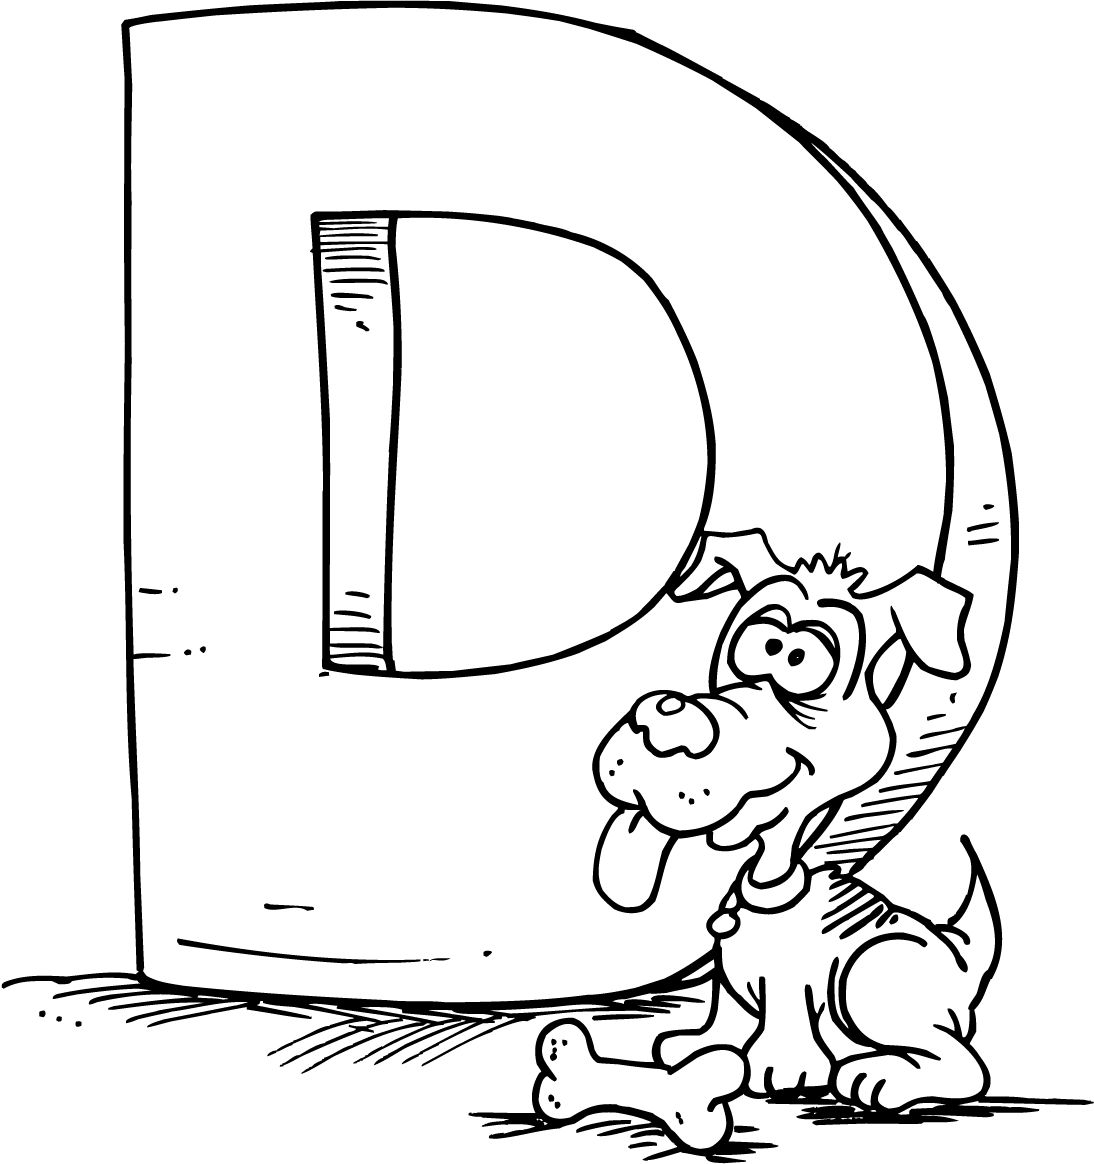 letter d coloring pages free online printable coloring pages sheets for kids get the latest free letter d coloring pages images favorite coloring pages